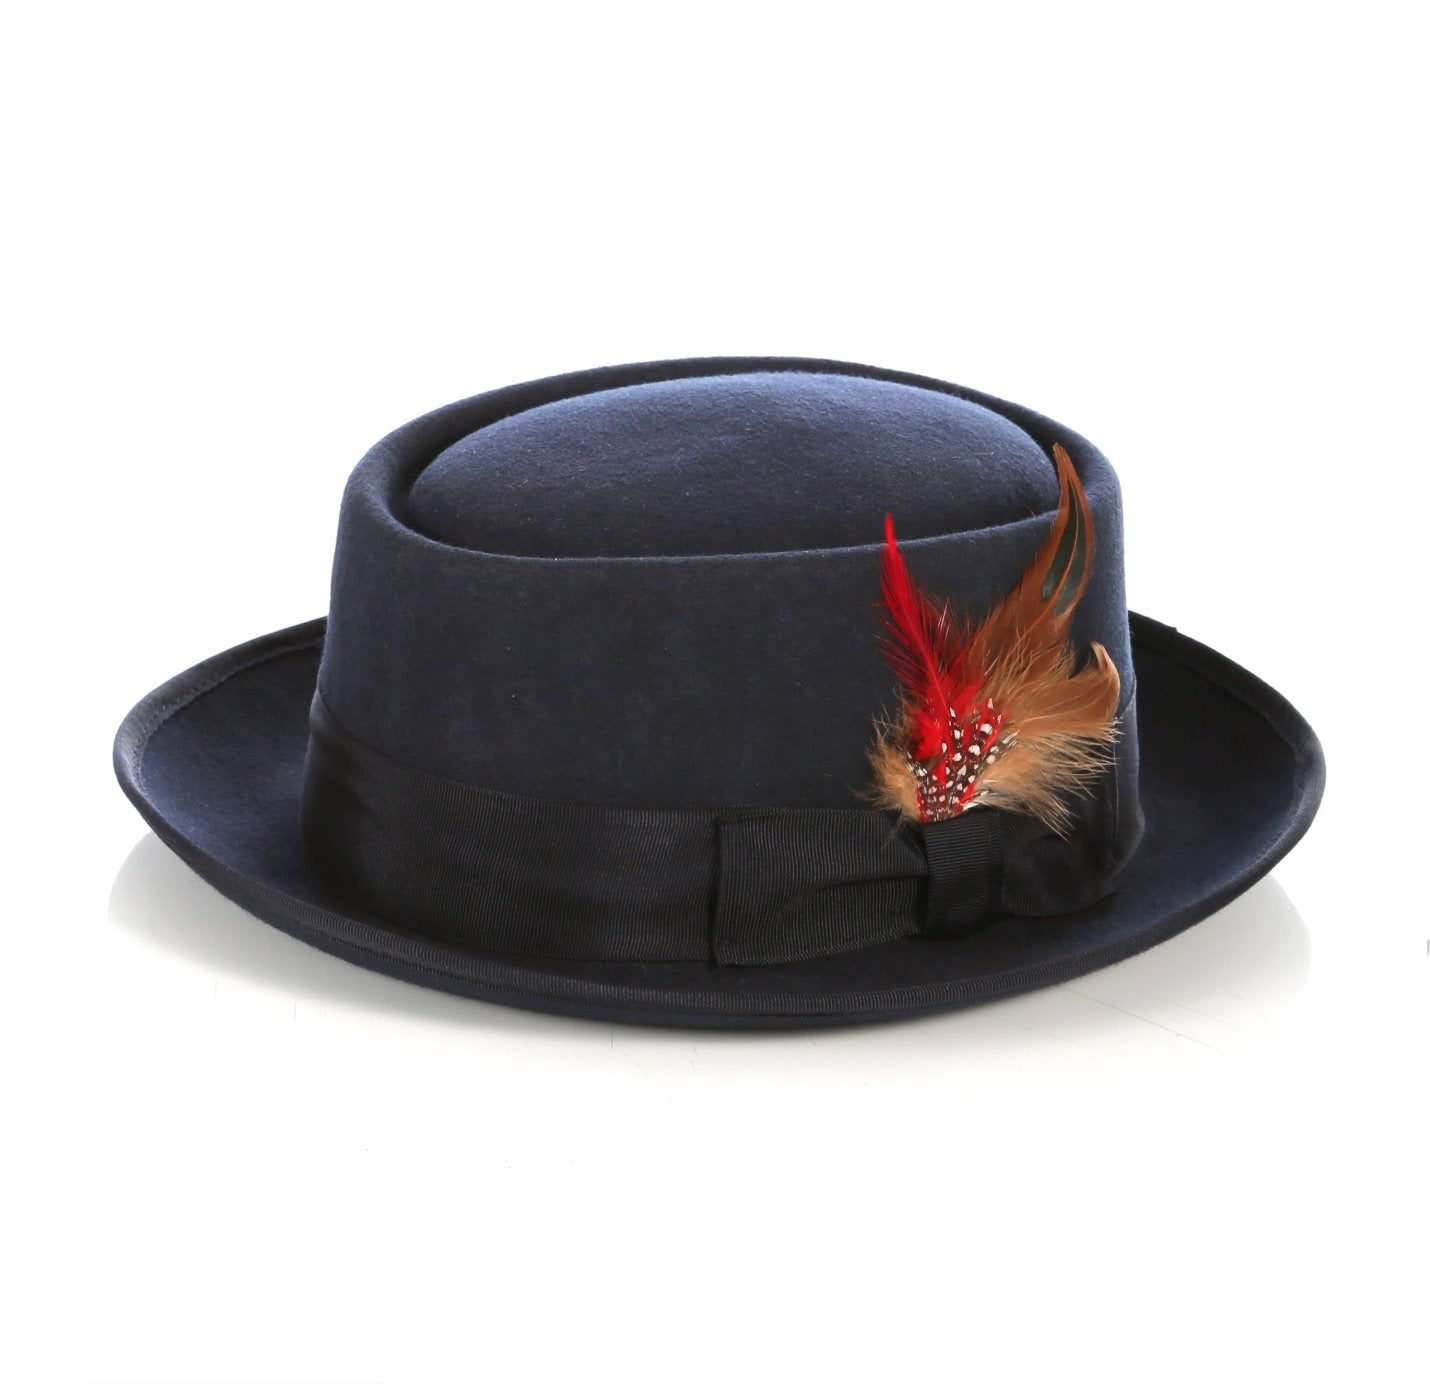 Mens Pork Pie Hat in Navy Blue